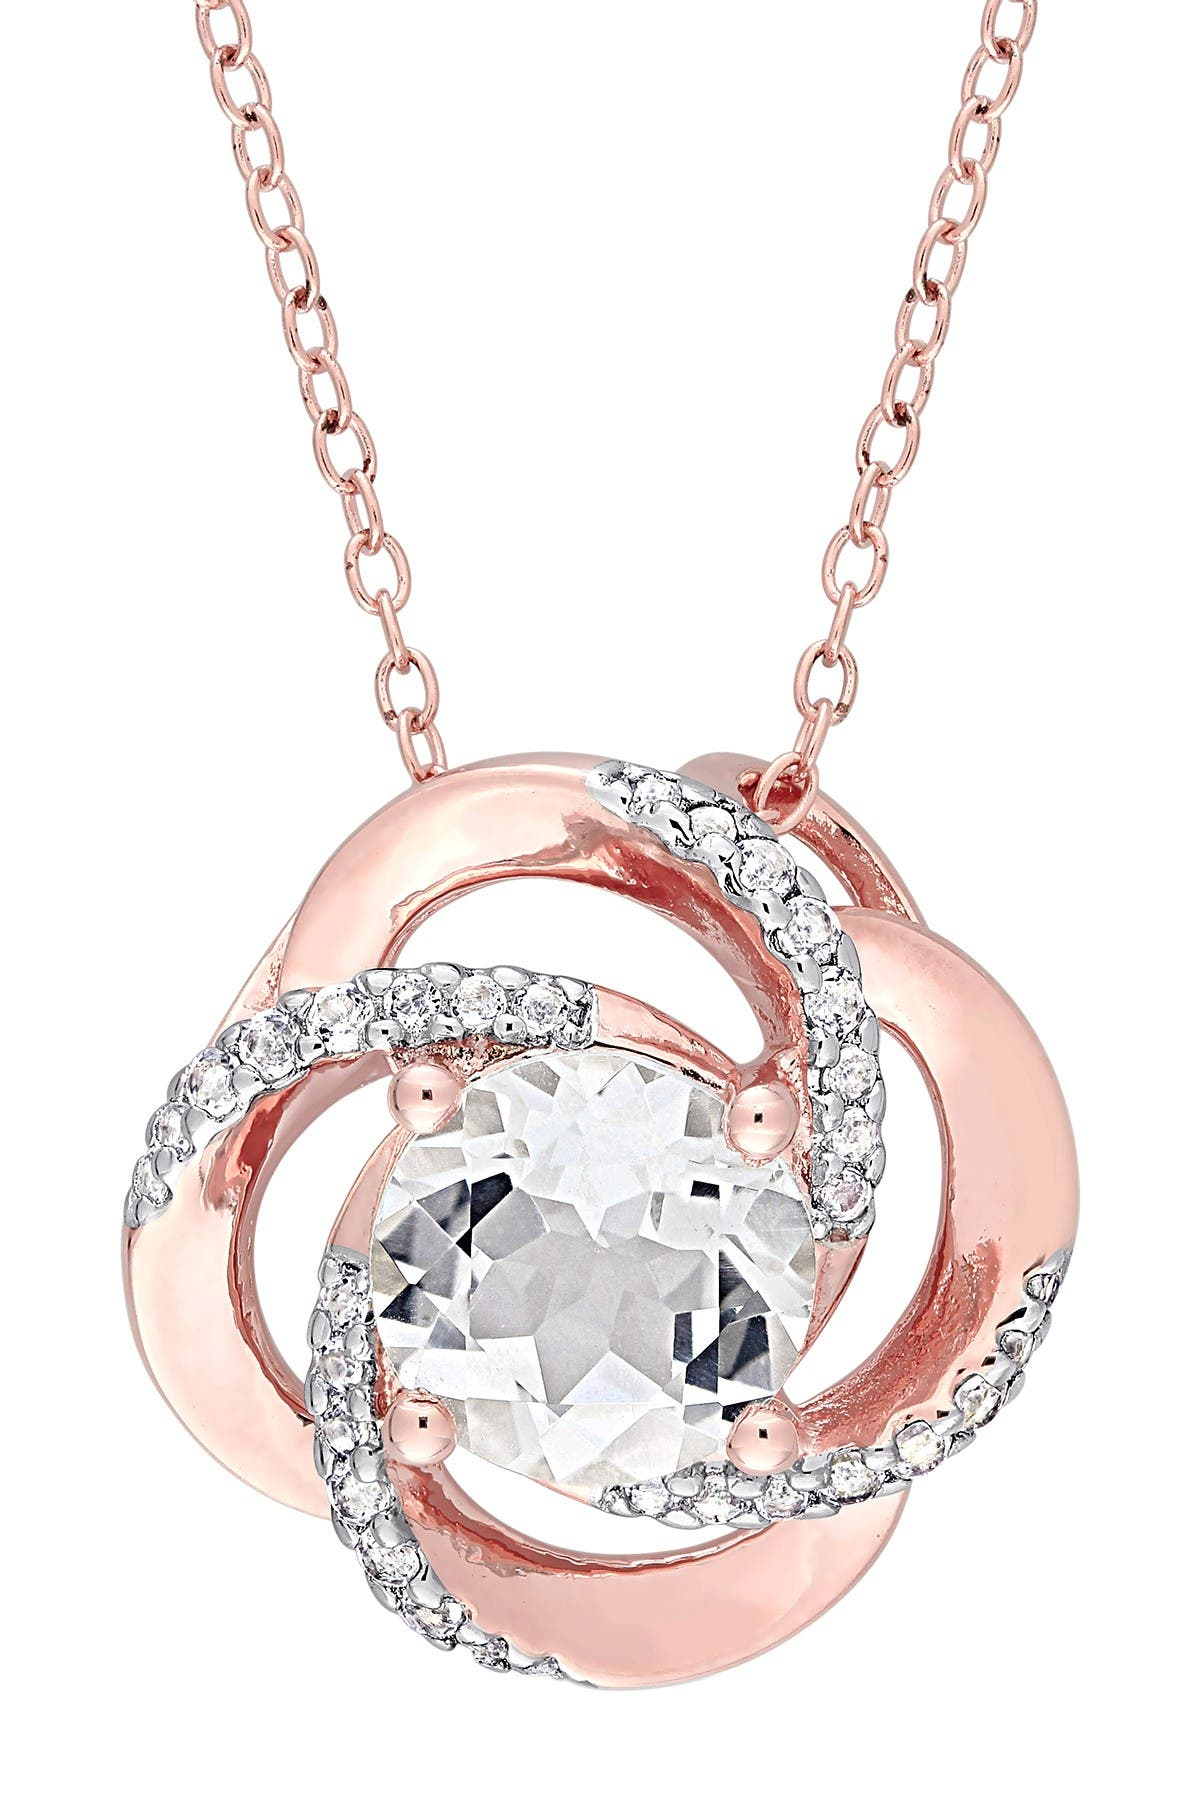 Image of Delmar 18K Rose Gold Vermeil White Topaz Interlaced Floral Swirl Pendant Necklace